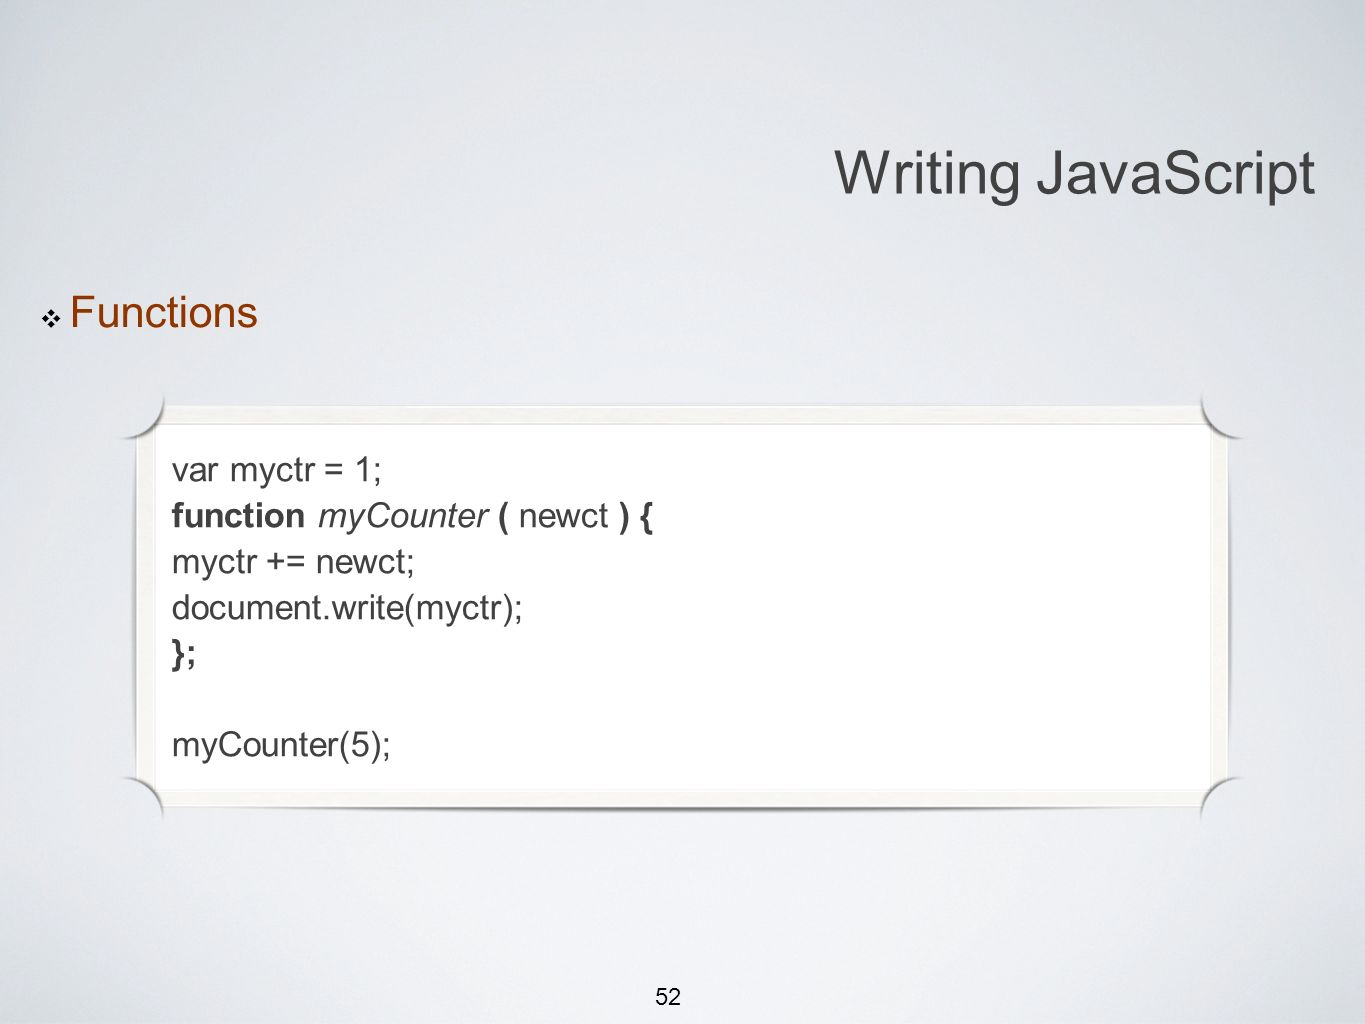 52 Michael Smotherman lectures 1:15pm FS2-207F Brandon Bombassei, Alejandro Campos labs 5pm-9pm 9pm-1am FS2-106E Writing JavaScript Functions var myctr = 1; function myCounter ( newct ) { myctr += newct; document.write(myctr); }; myCounter(5);